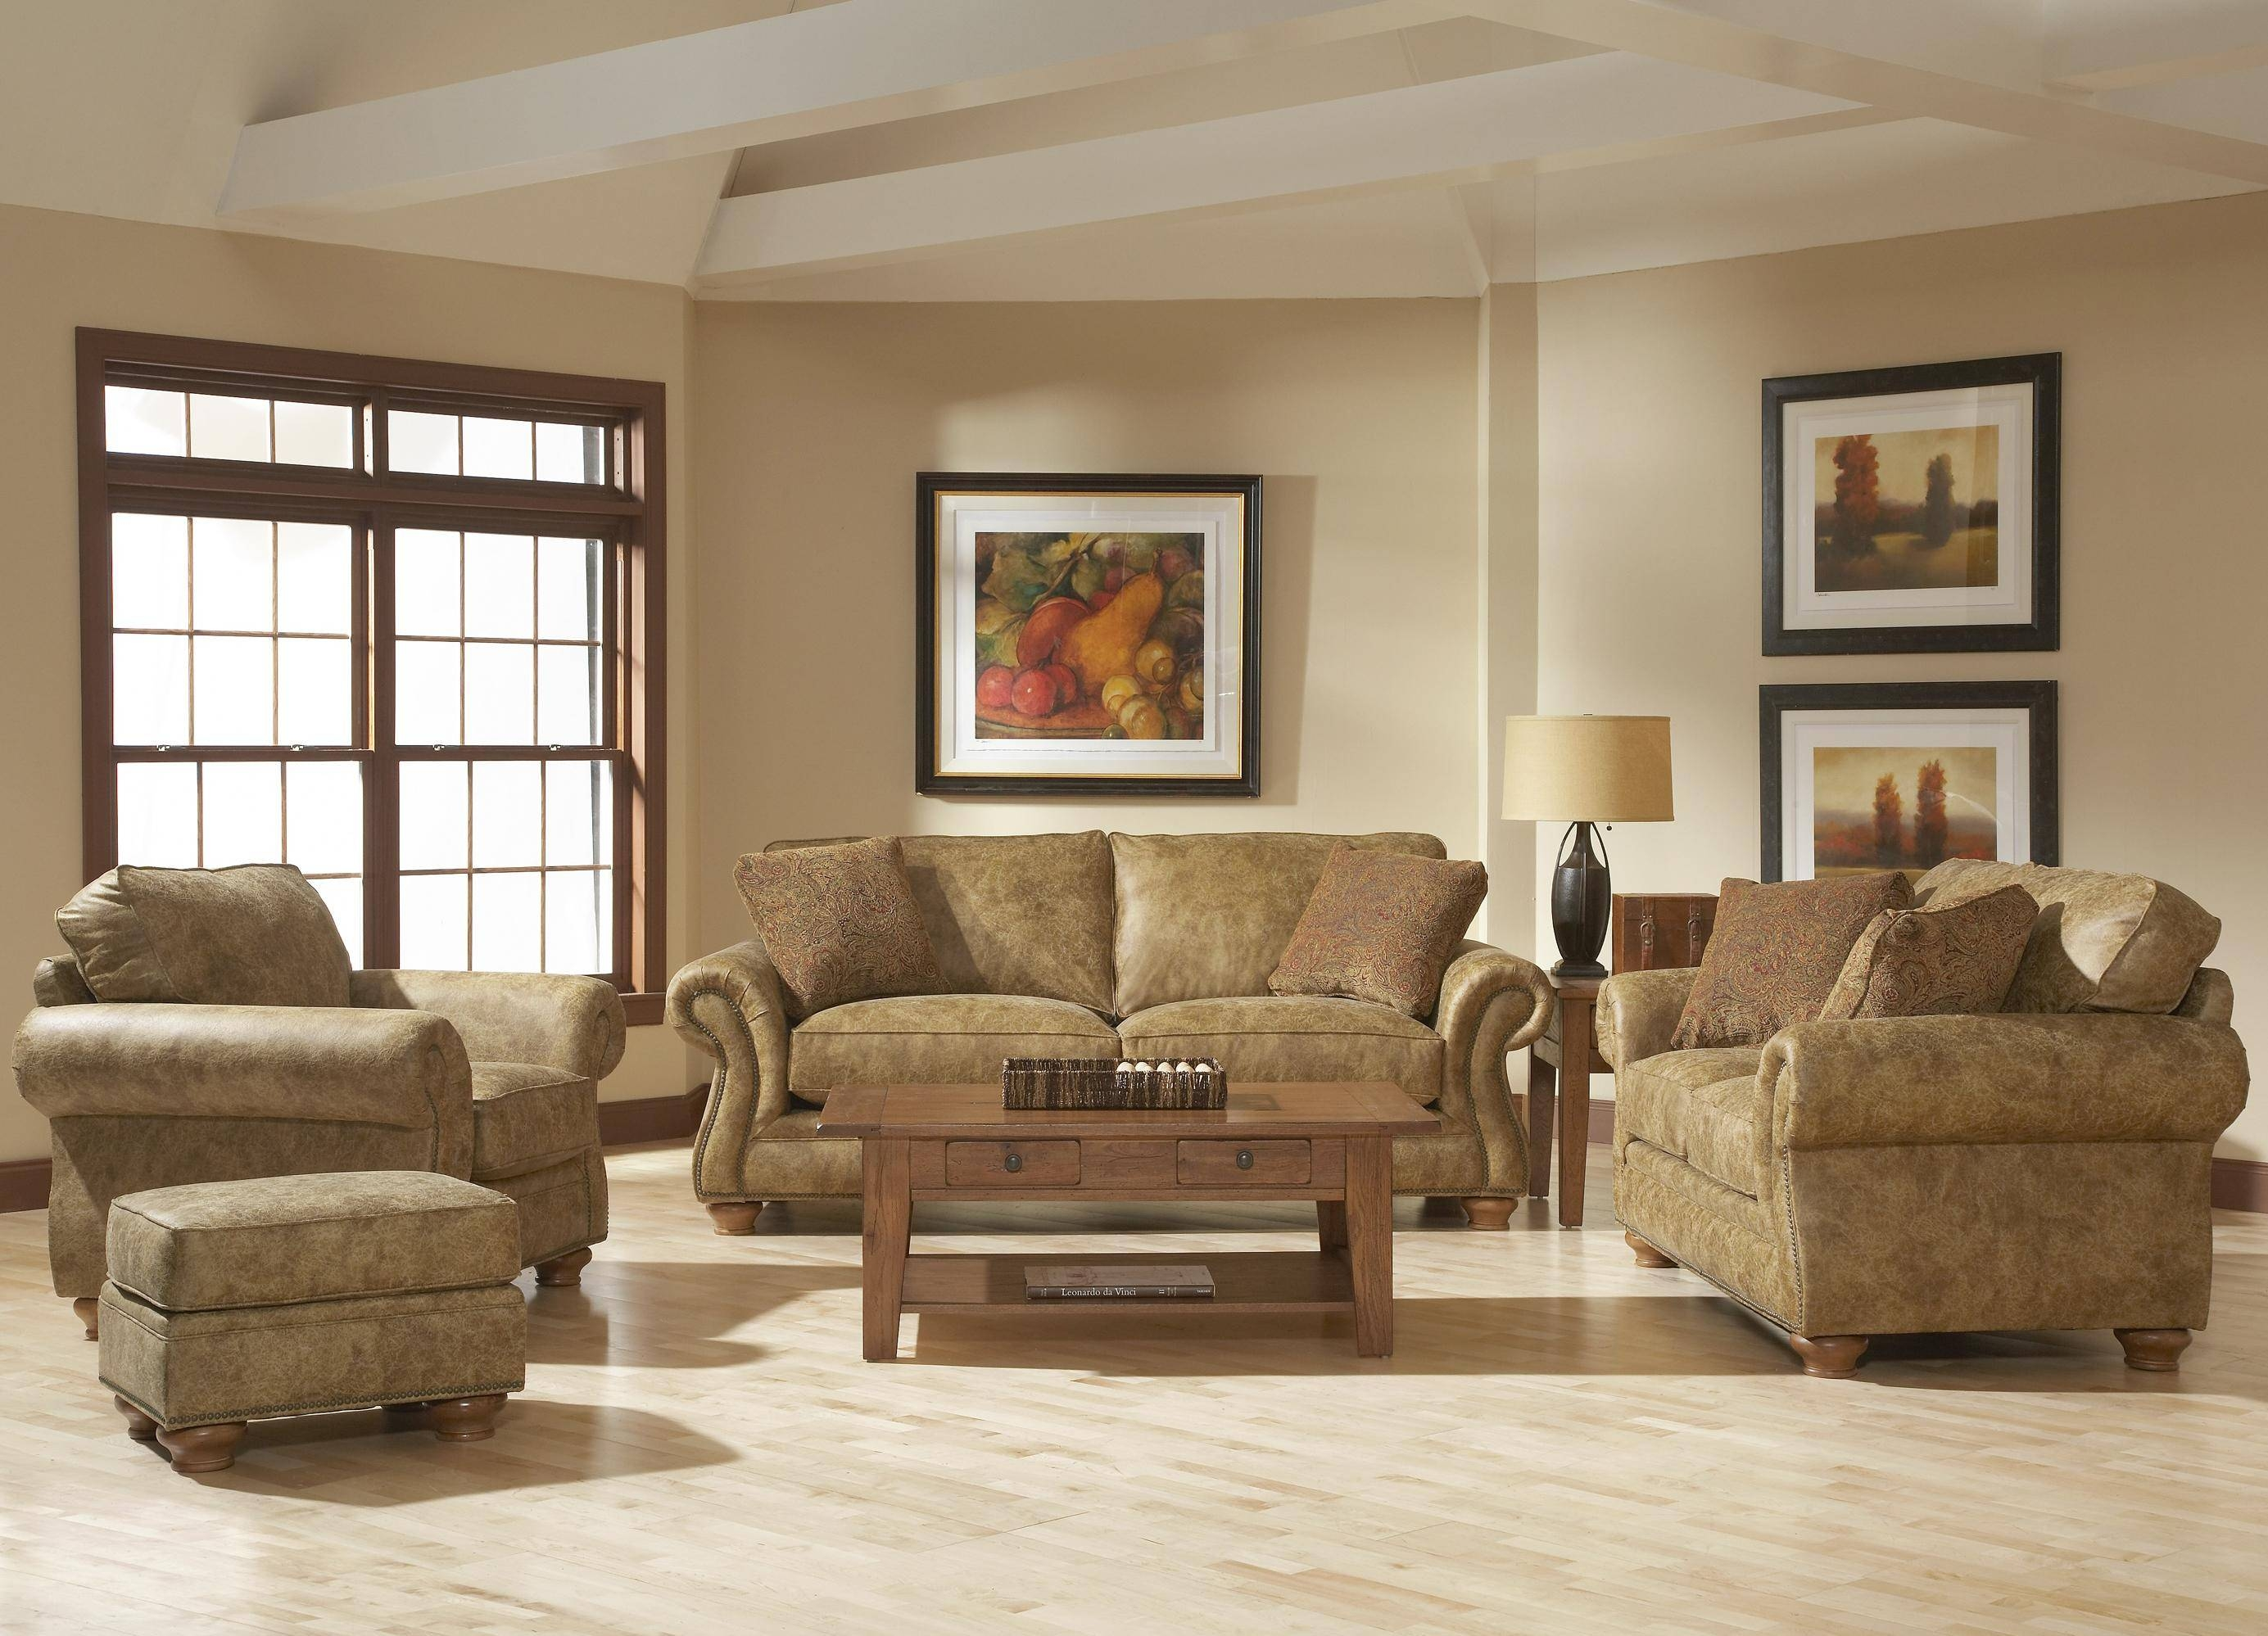 Furniture: Broyhill Sofas | Broyhill Furniture | Broyhill Prices intended for Broyhill Mckinney Sofas (Image 12 of 15)